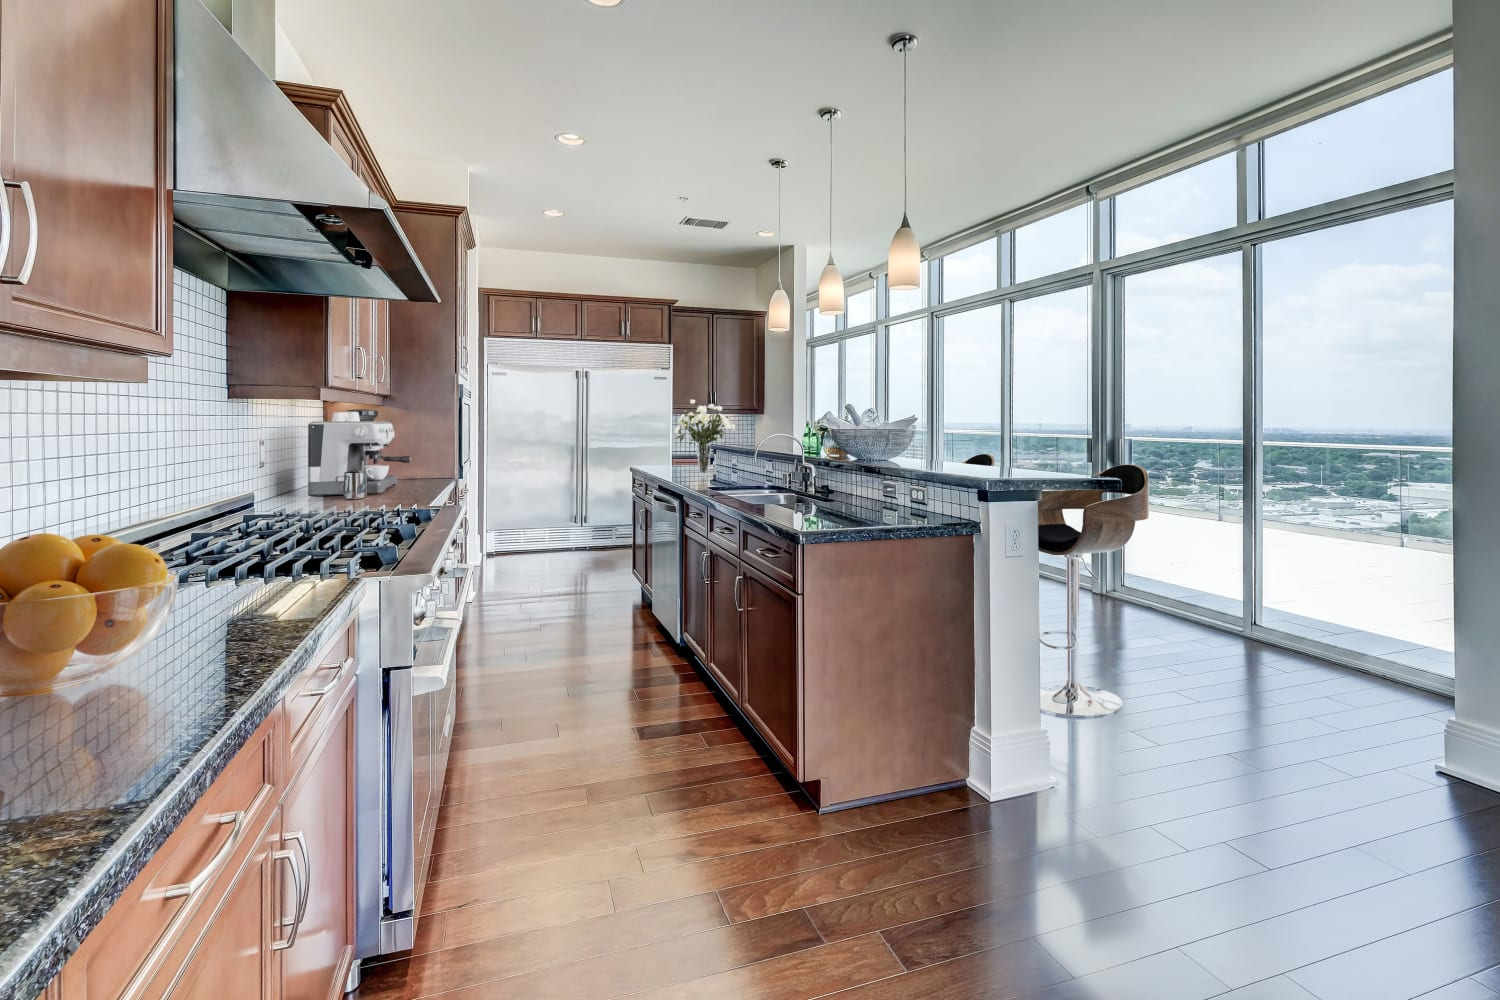 Sleek kitchen with stainless steel appliances at The Heights at Park Lane in Dallas, Texas